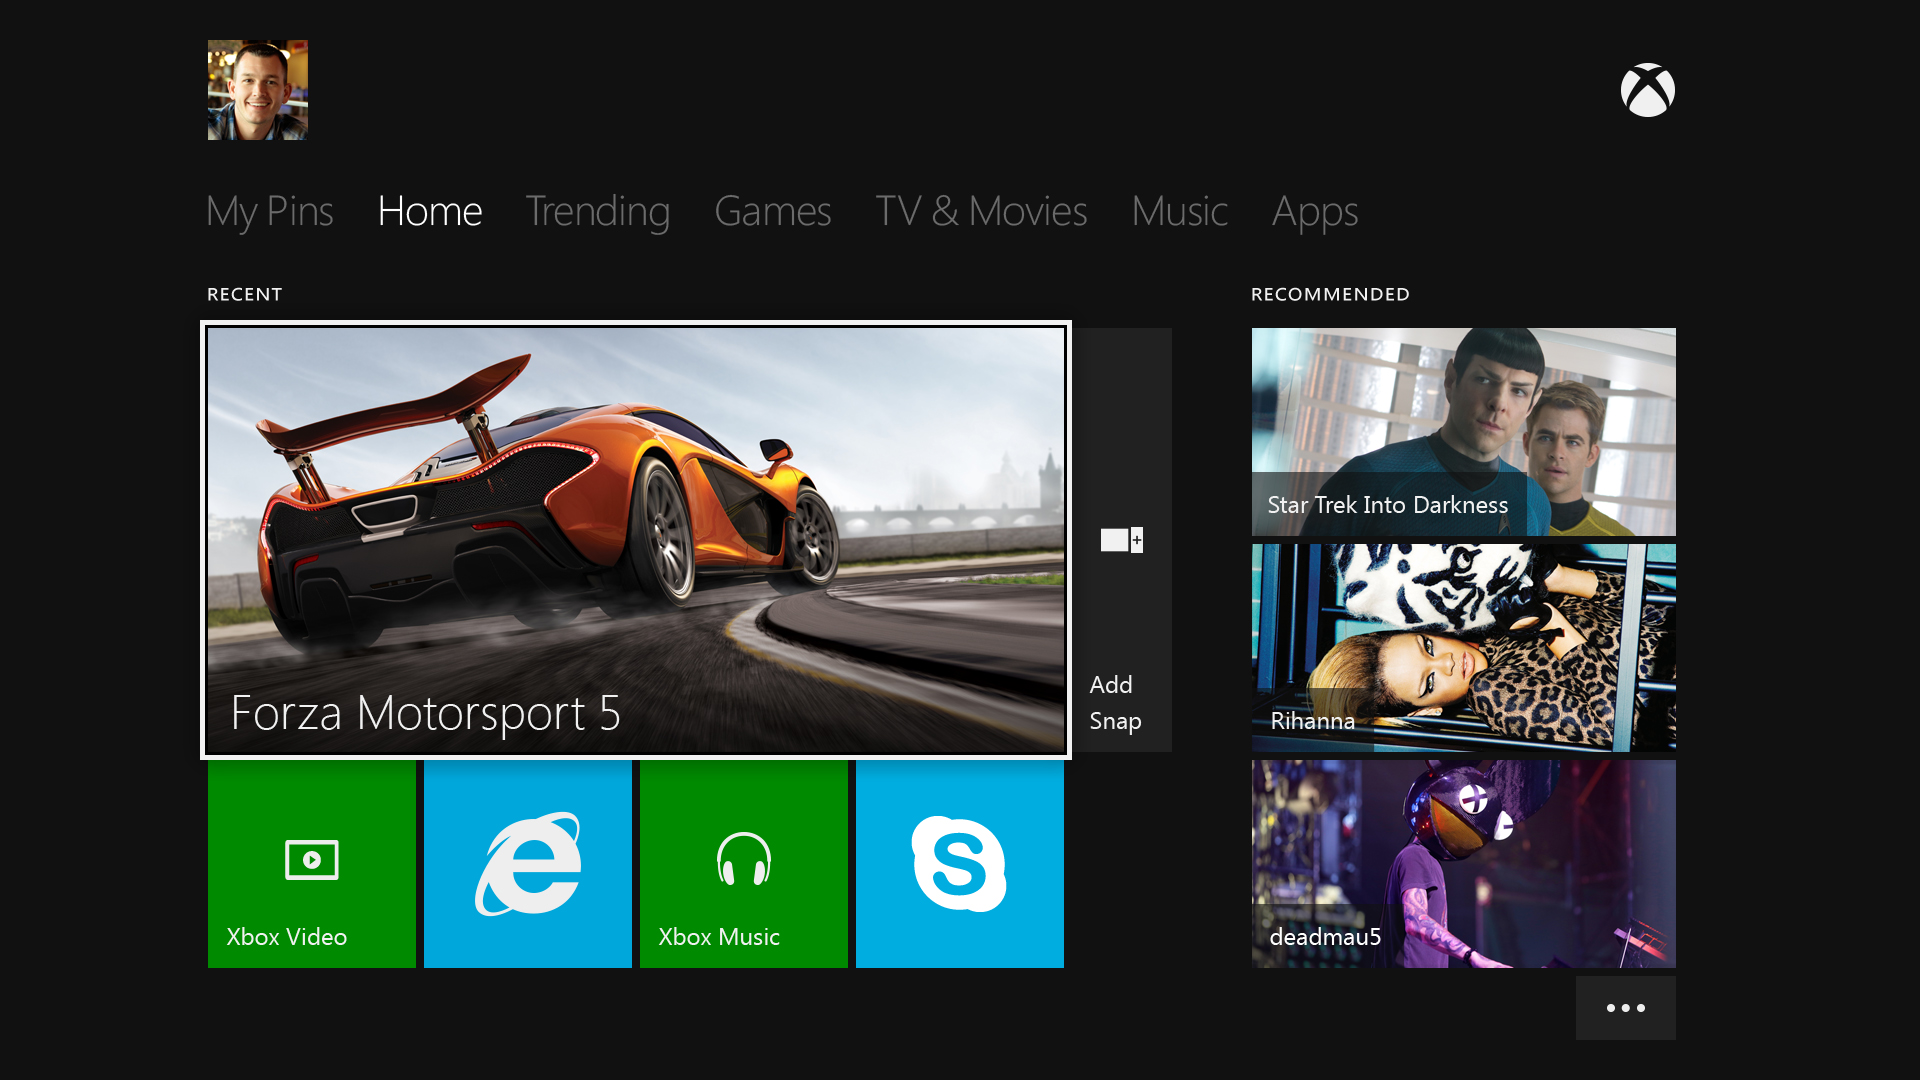 Xbox_Home_UI_EN_ROW_No3rdParty